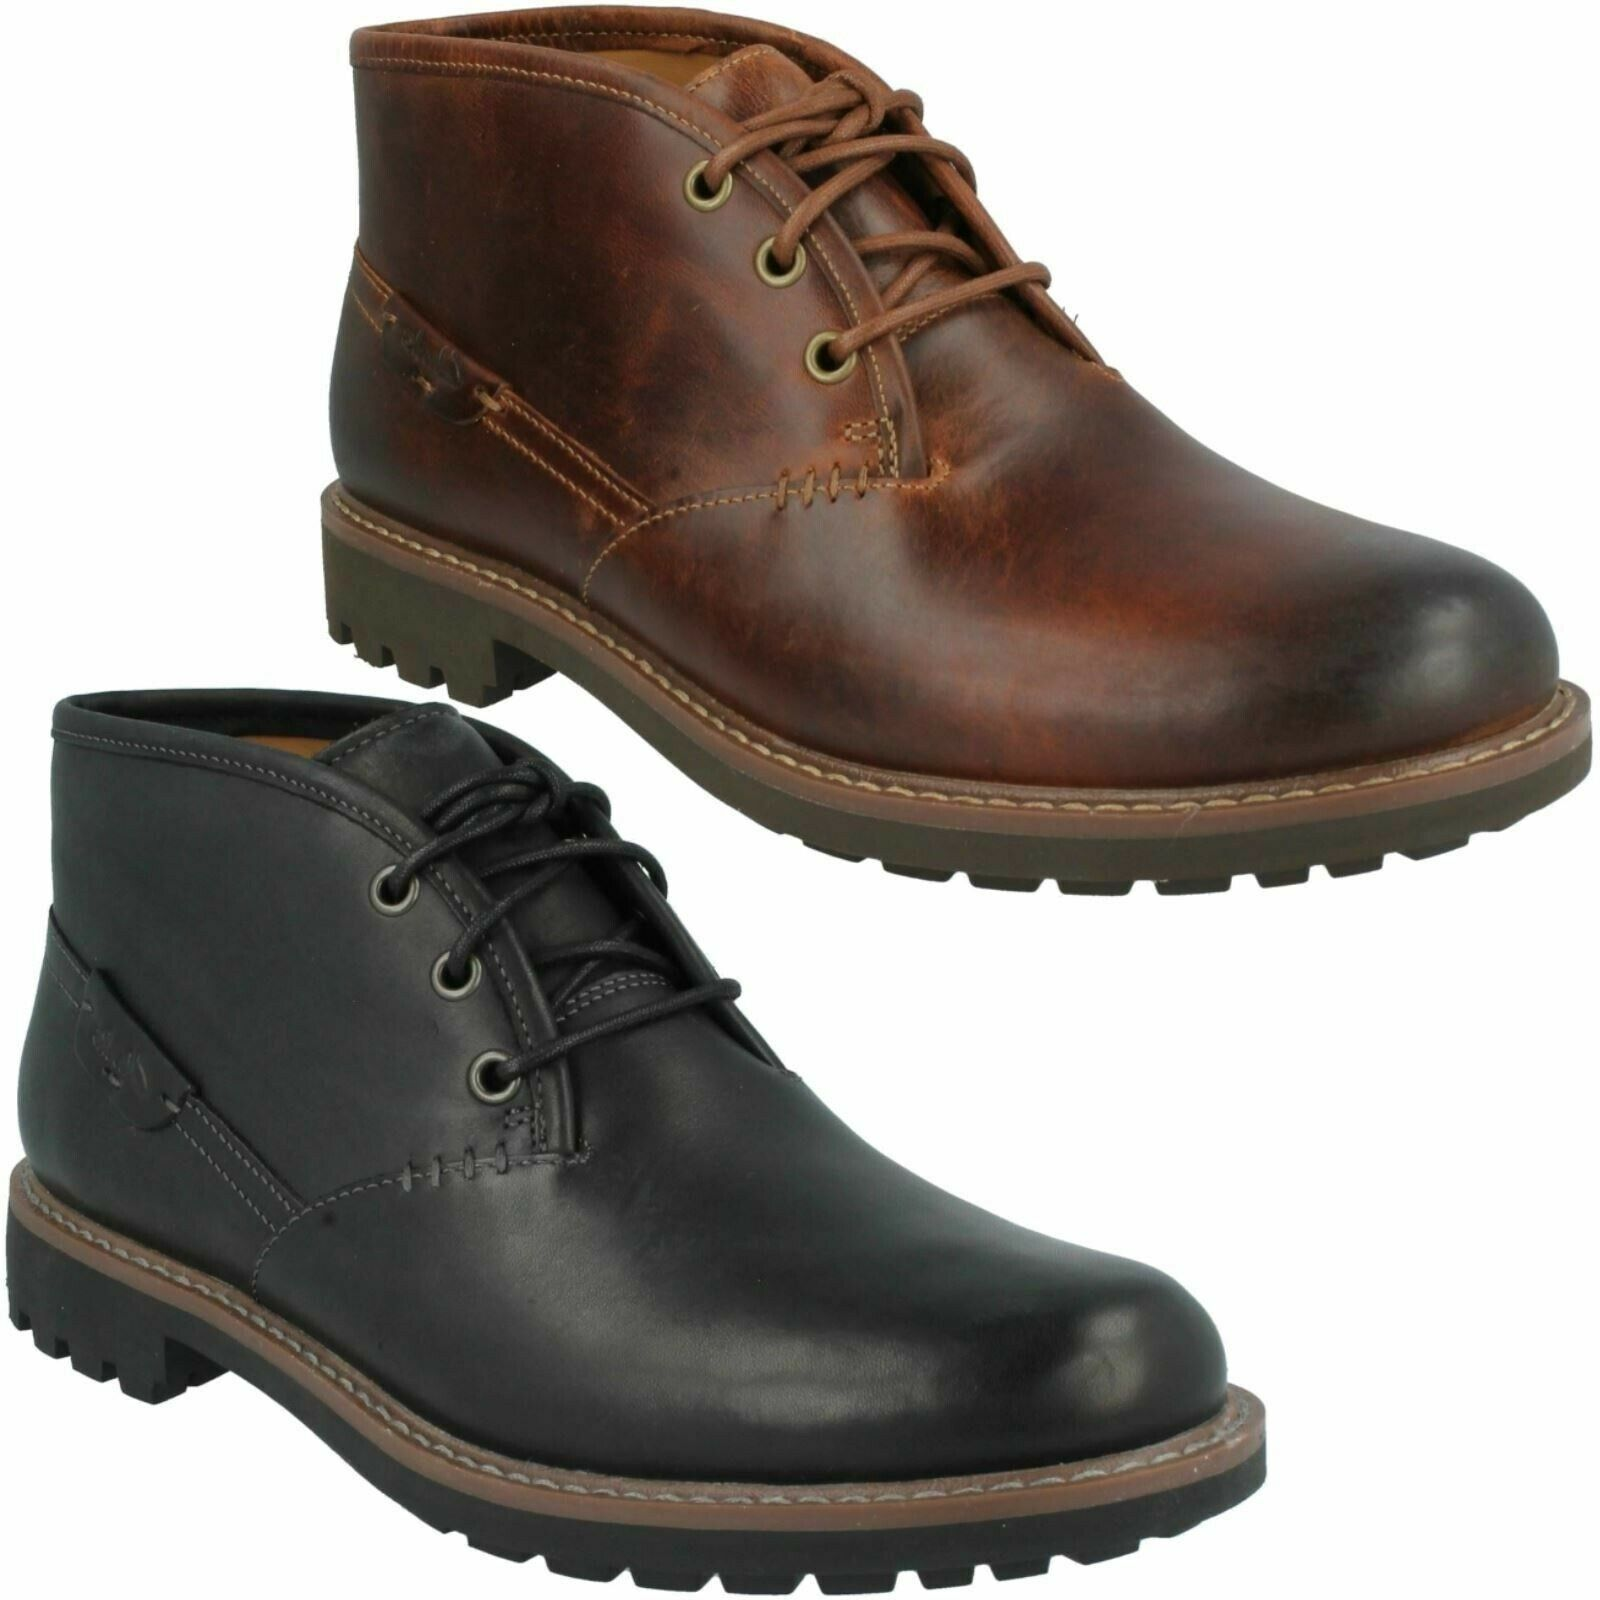 MENS CLARKS MONTACUTE DUKE LACE UP LEATHER CASUAL ANKLE DESERT WINTER BOOTS SIZE